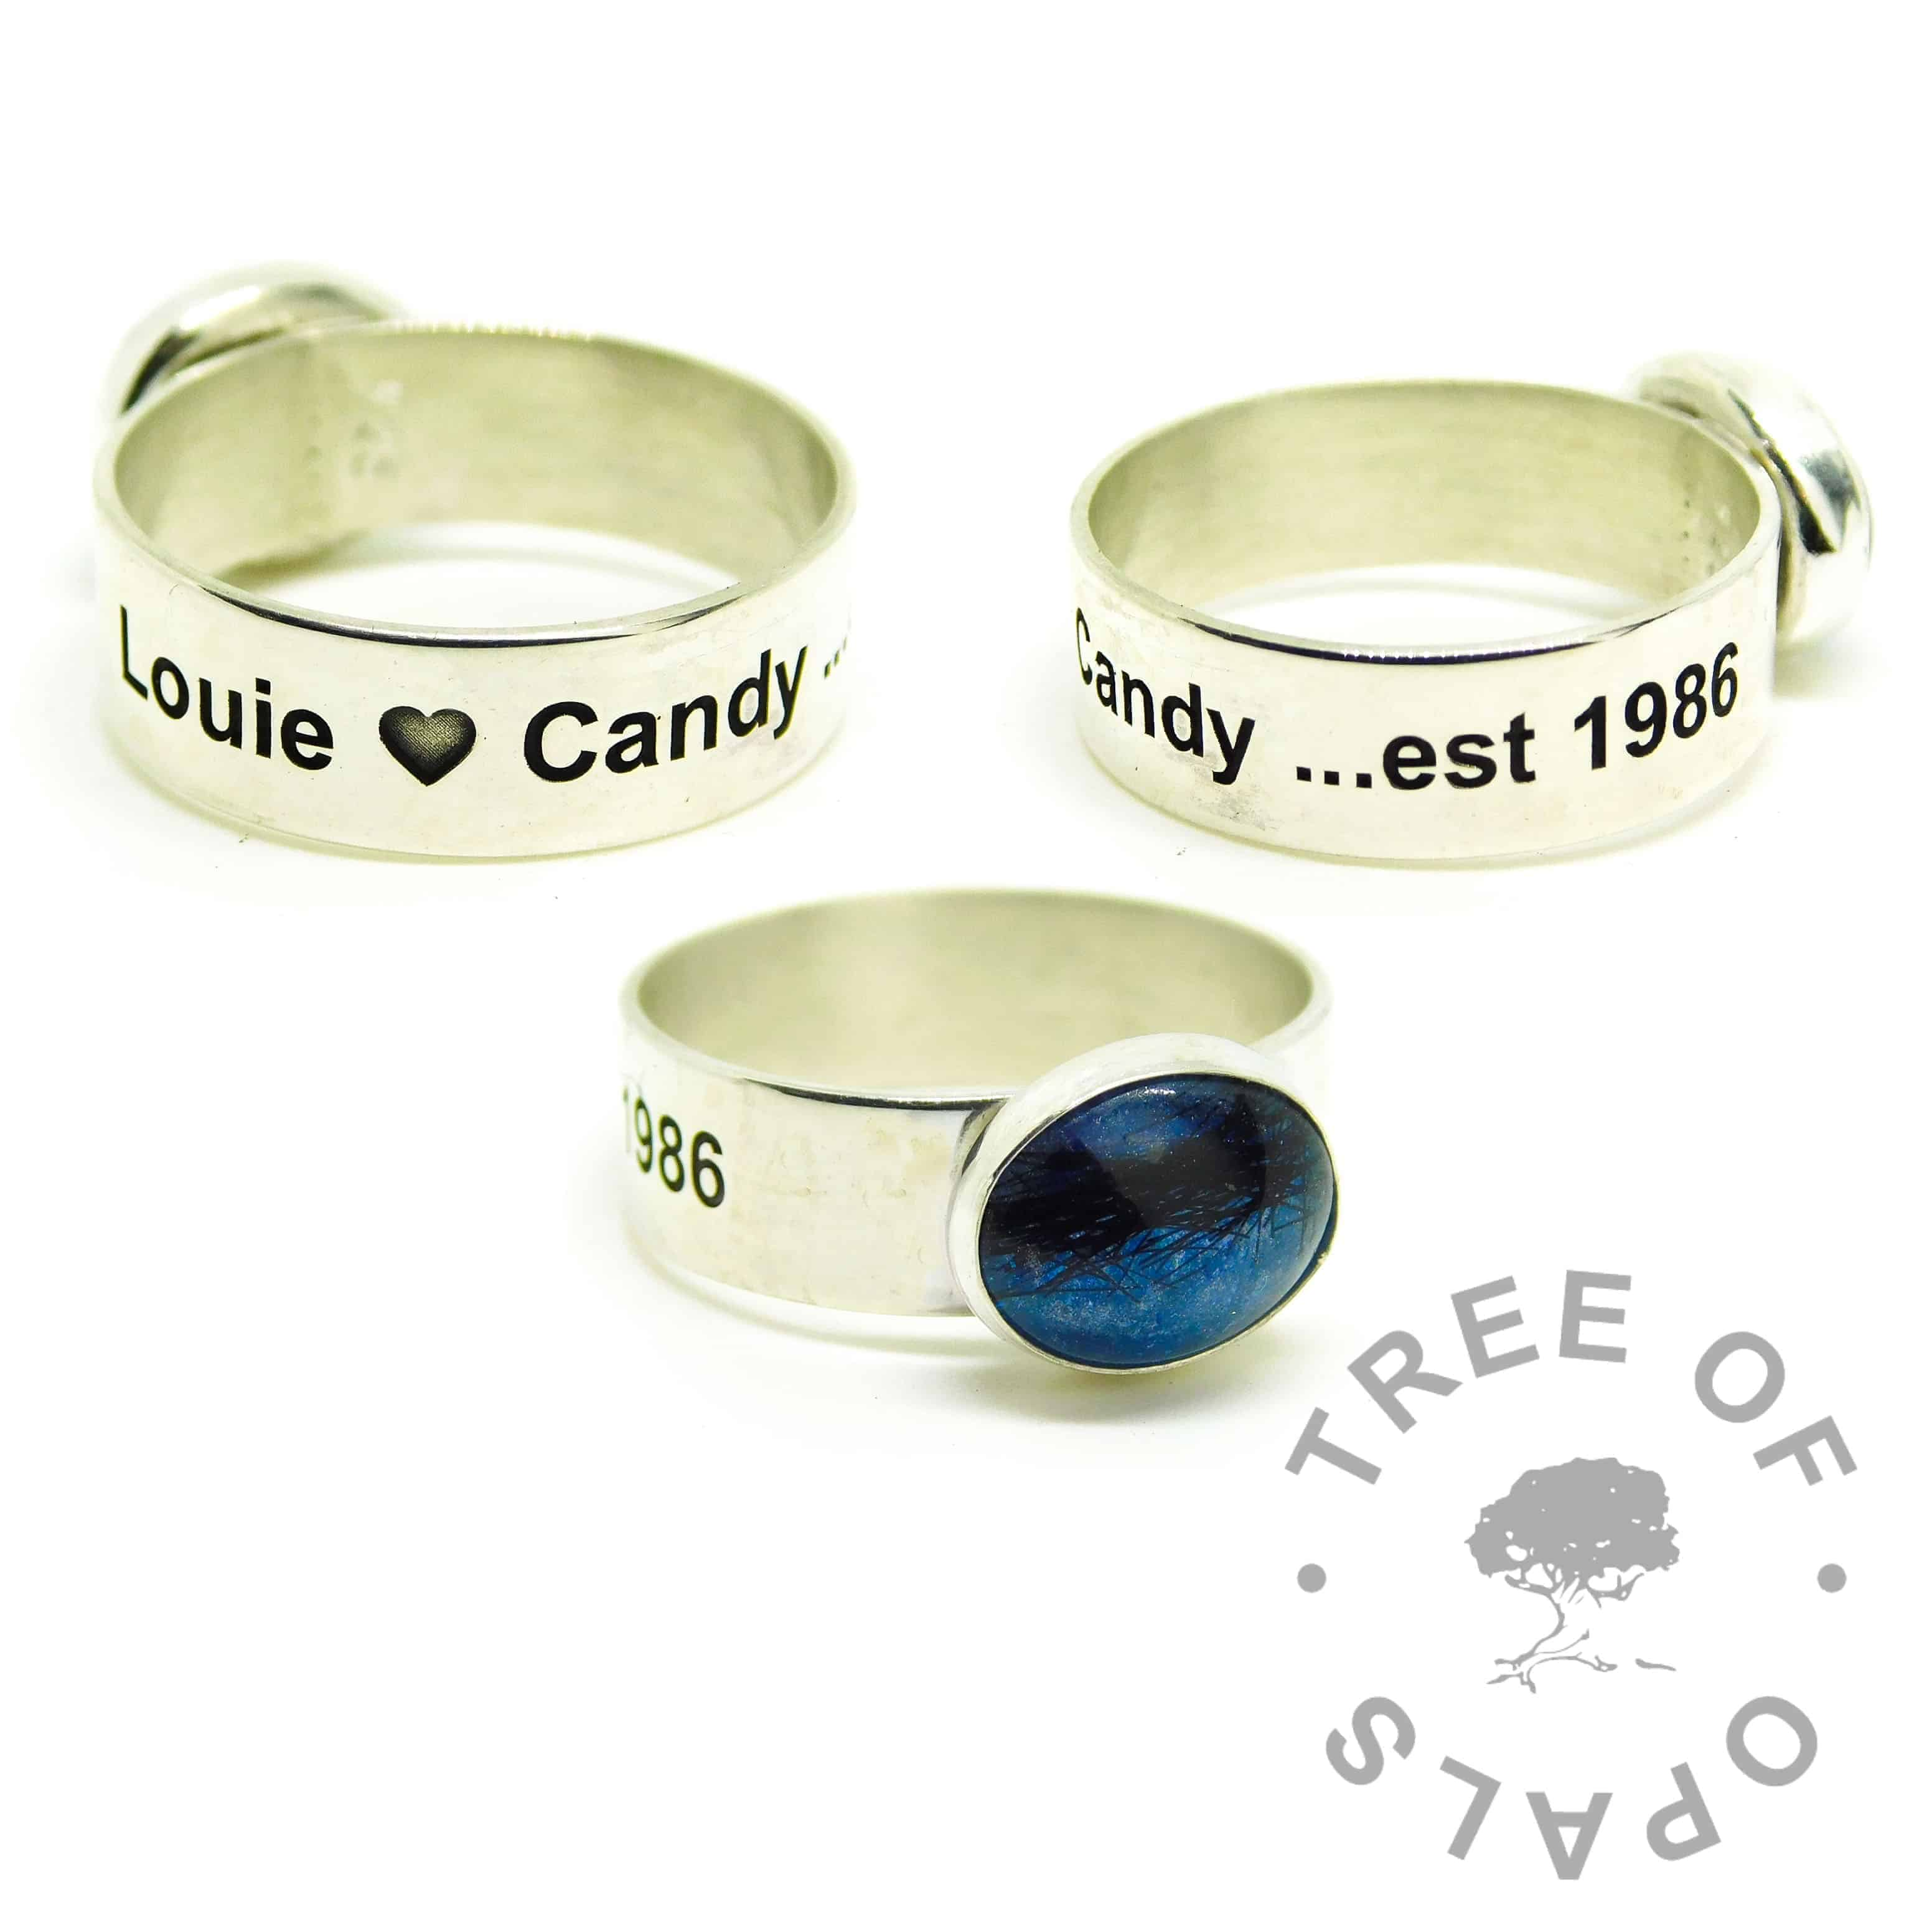 ashes jewellery engraved ring, 6mm shiny band engraved outside with Arial font and heart emoji. Aegean blue resin sparkle mix with short dark hair